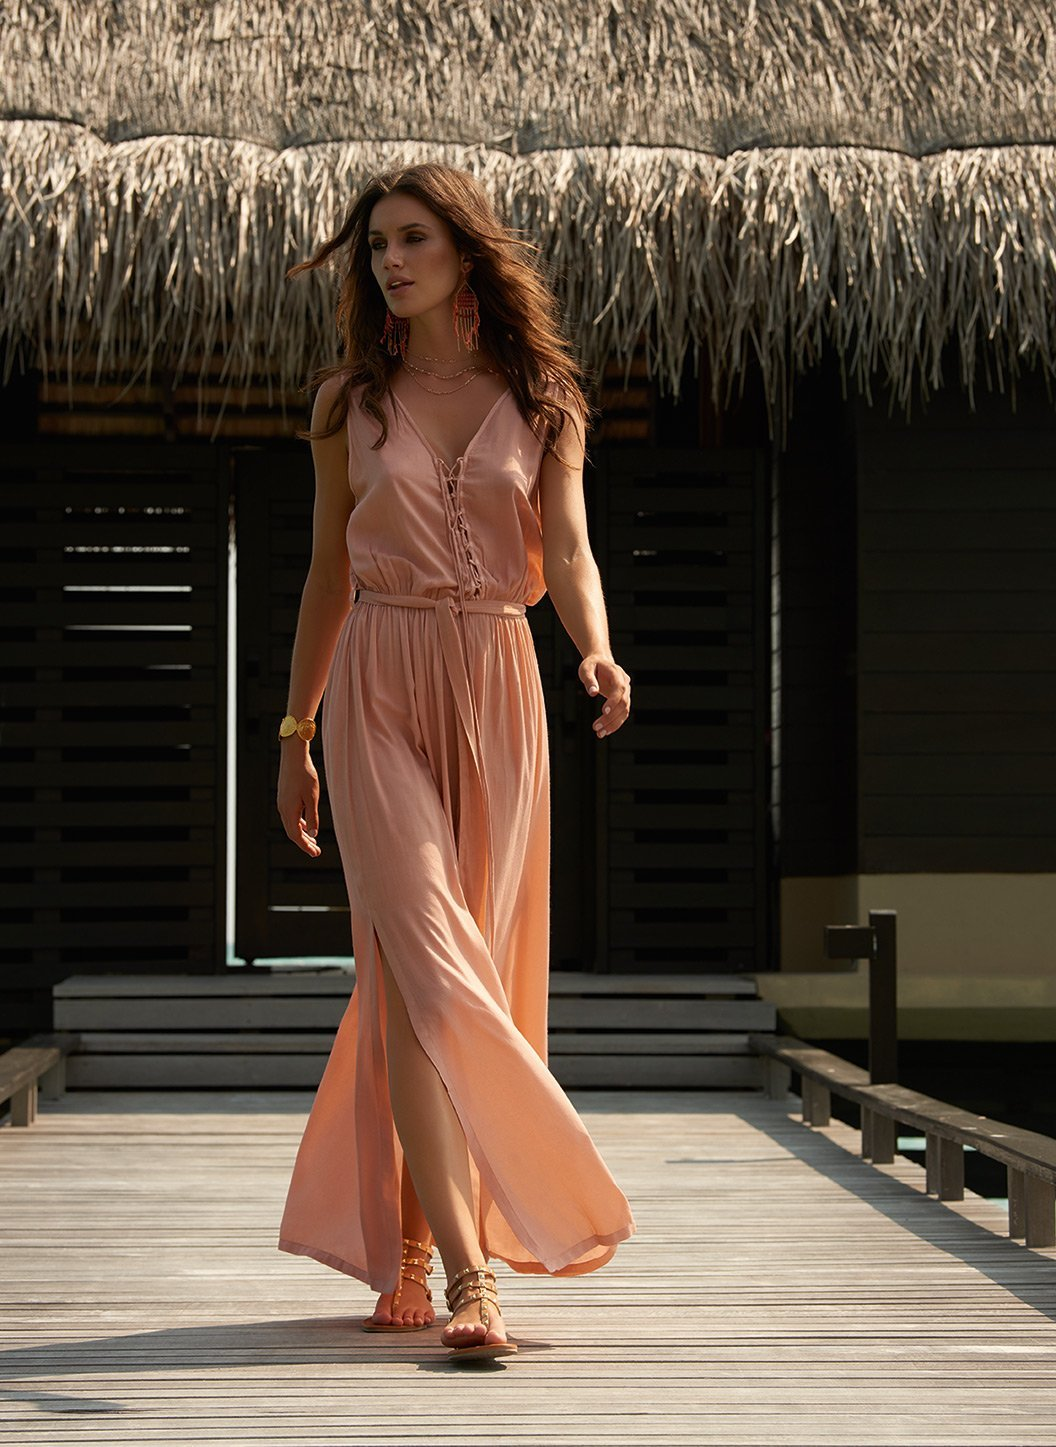 jacquie tan laceup belted maxi dress lifestyle 2019